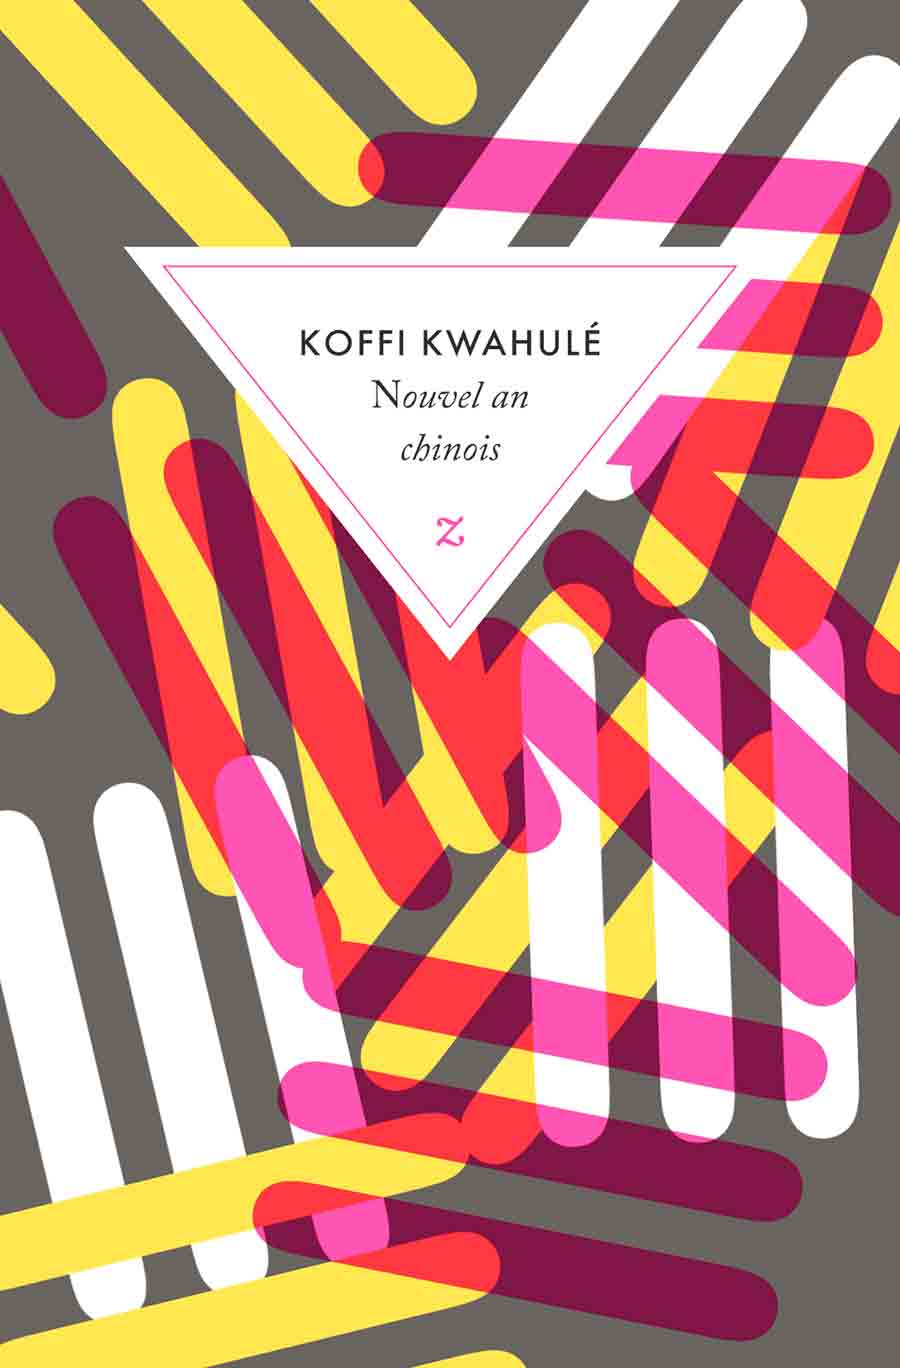 koffi_kwahule_nouvel_an